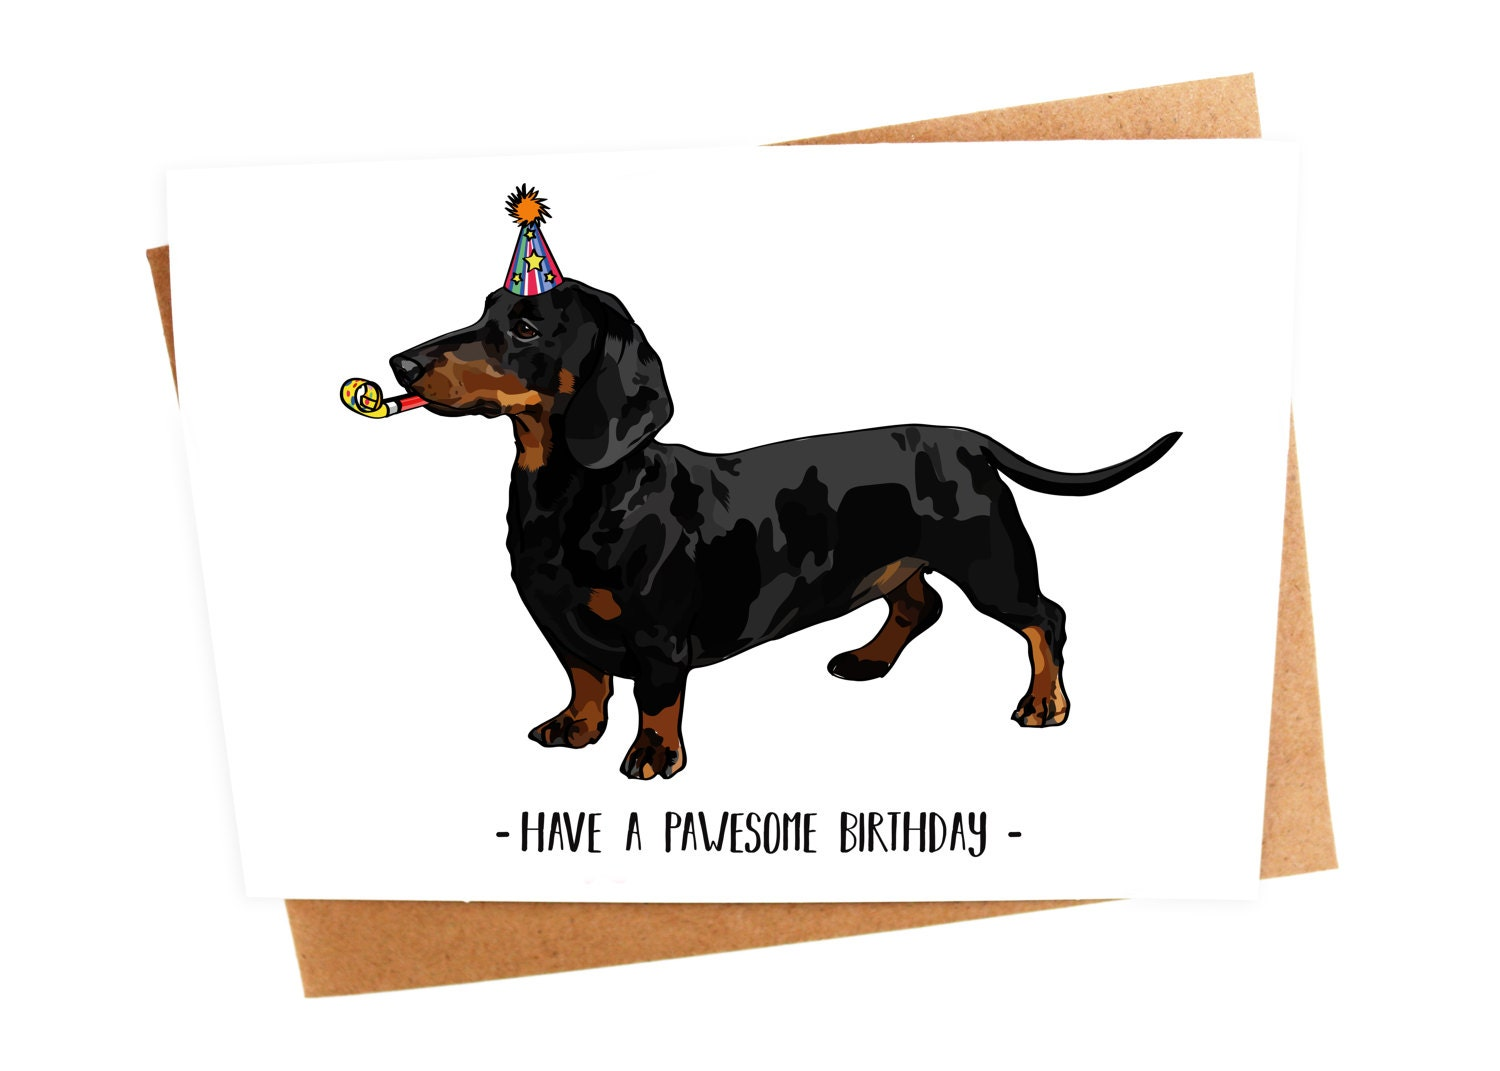 Dachshund sausage wiener dog illustration birthday greetings zoom kristyandbryce Choice Image